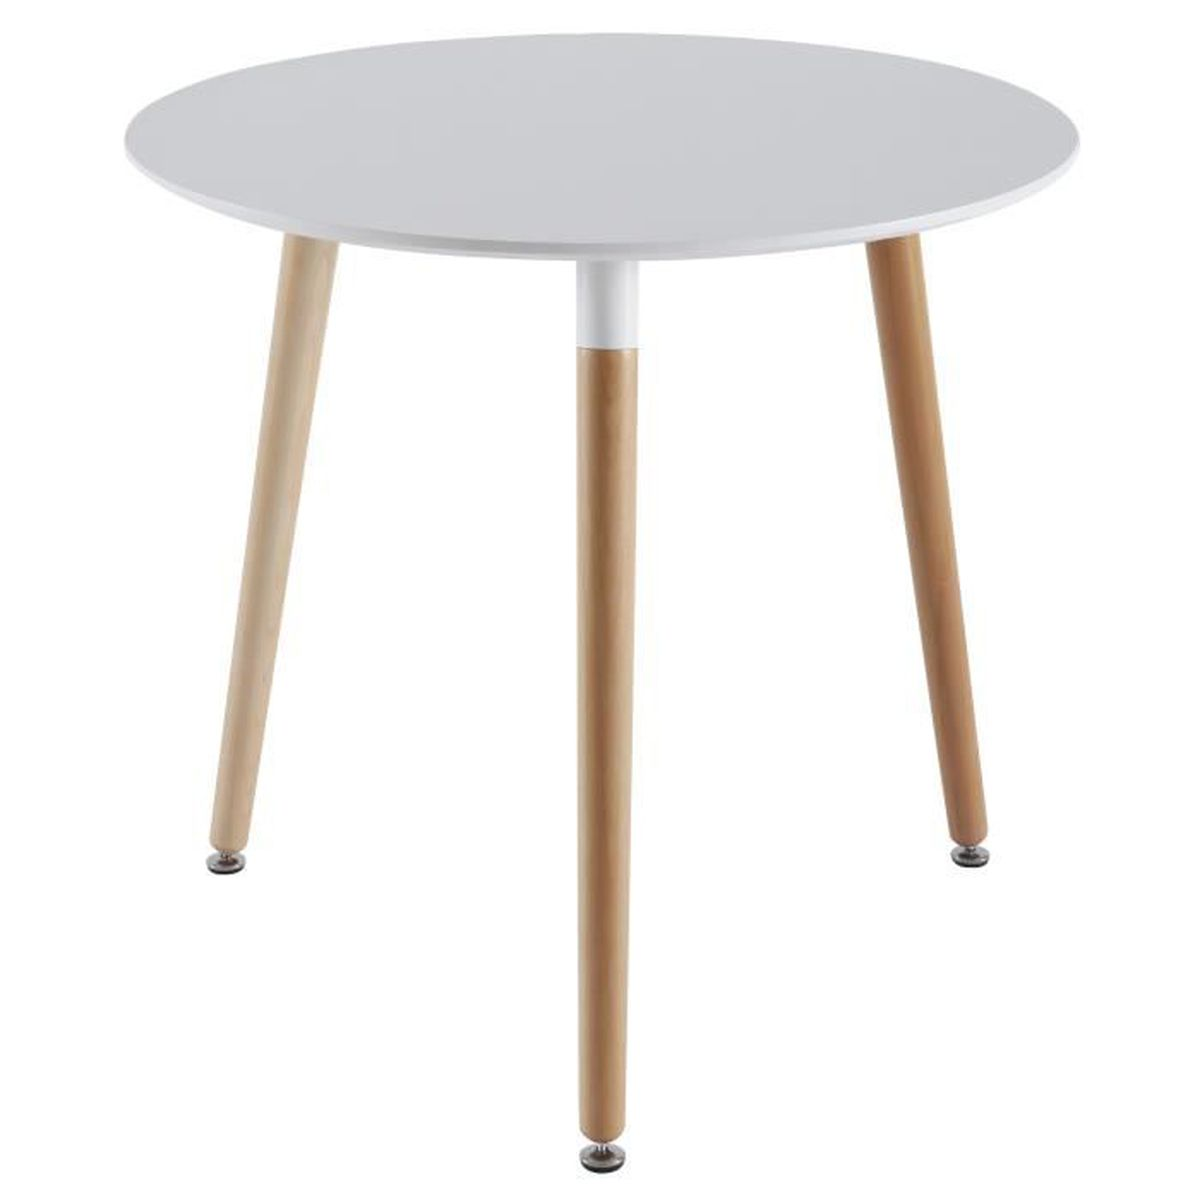 Table ronde design scandinave coloris blanc et bois for Table ronde extensible style scandinave